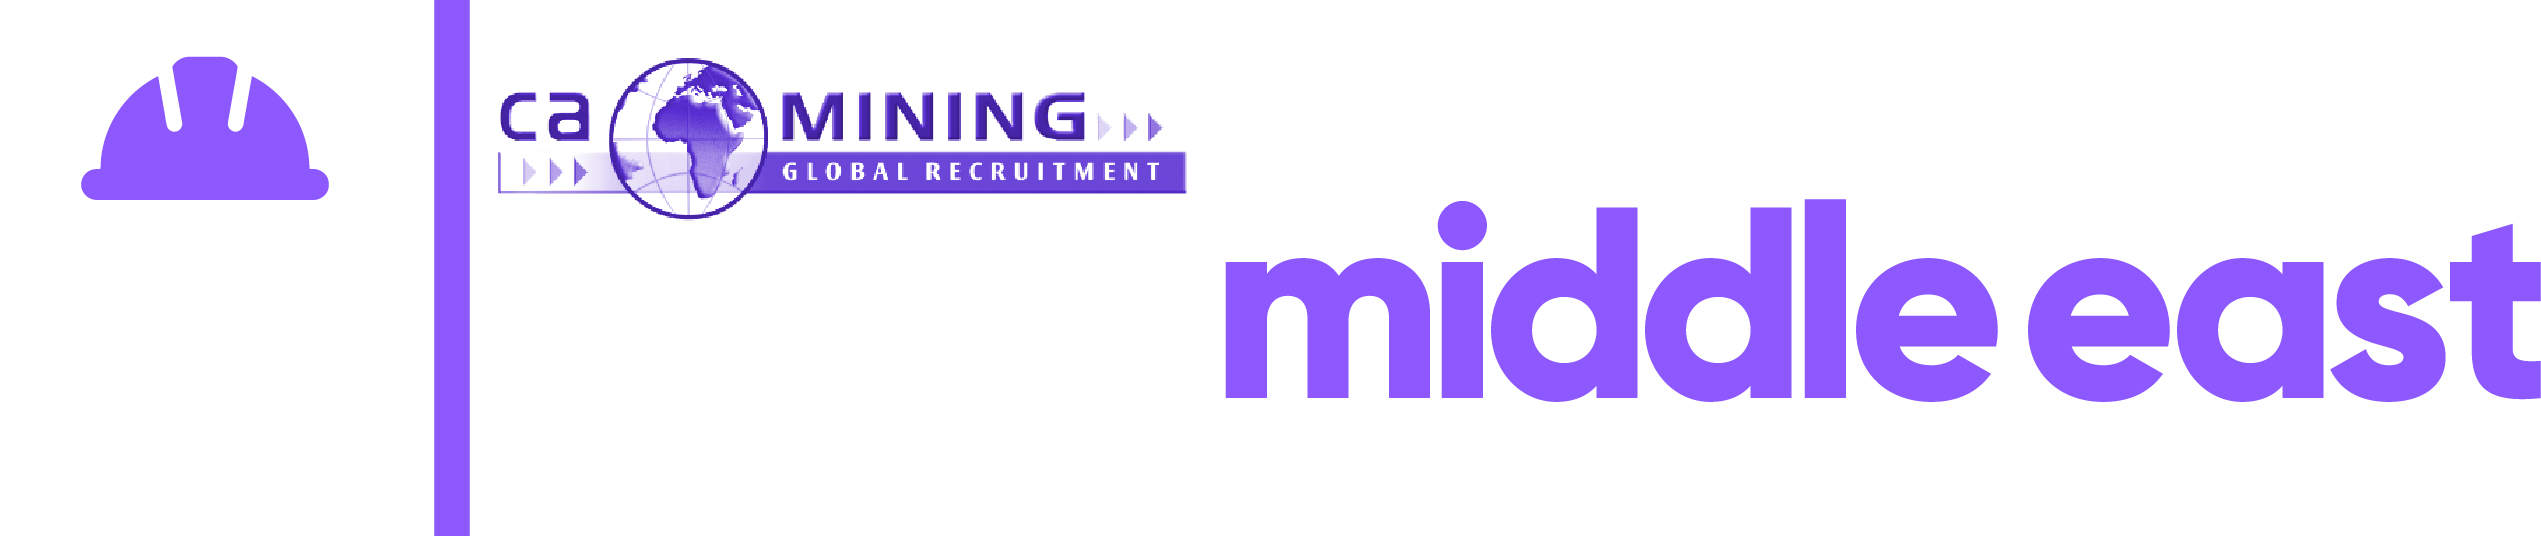 Middle East Mining Jobs